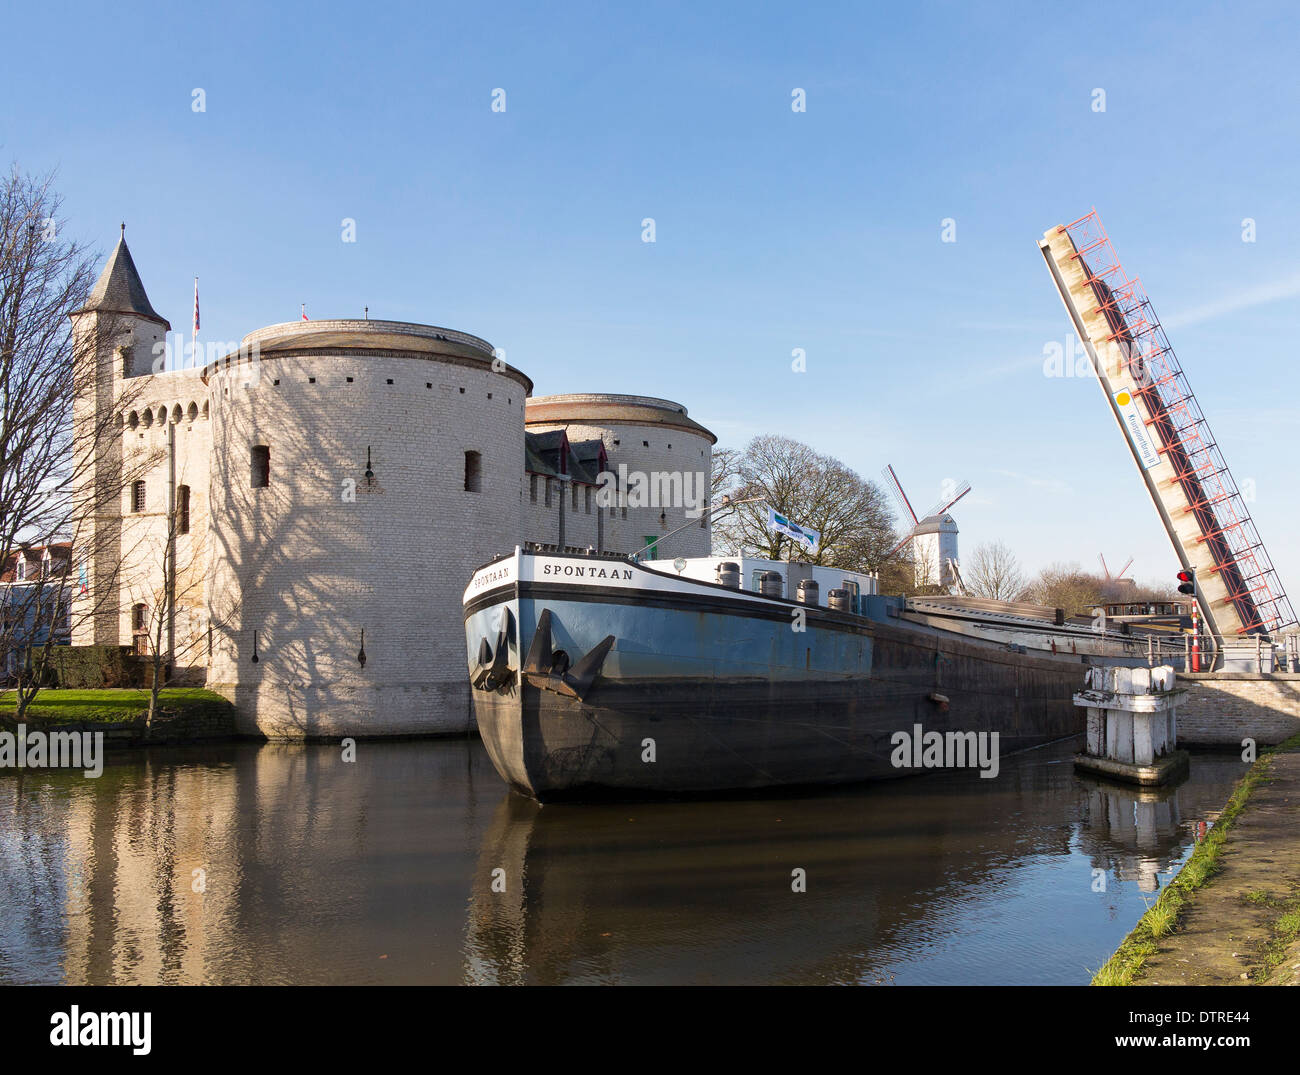 A freight carrying barge on the canal around Bruges city centre at the Kruispoort gate (Brugge) - Stock Image